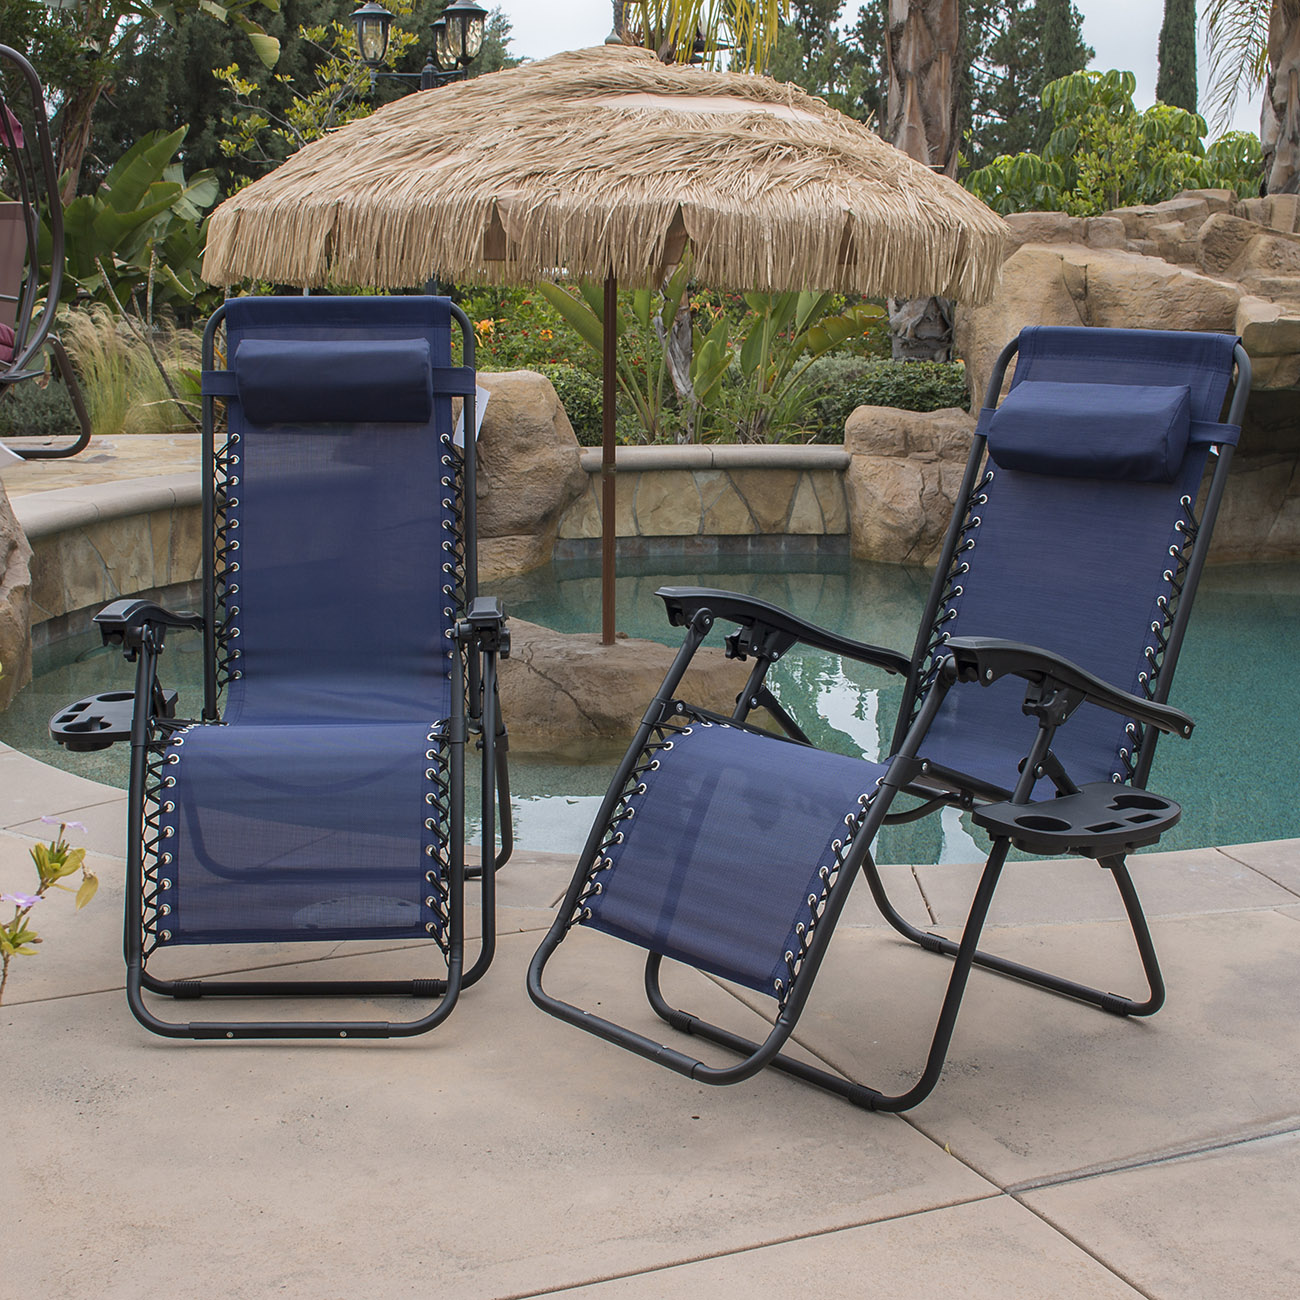 Cool Details About 1 Pair Blue Zero Gravity Lounge Chairs Recliner Outdoor Beach Patio Pool New Ocoug Best Dining Table And Chair Ideas Images Ocougorg